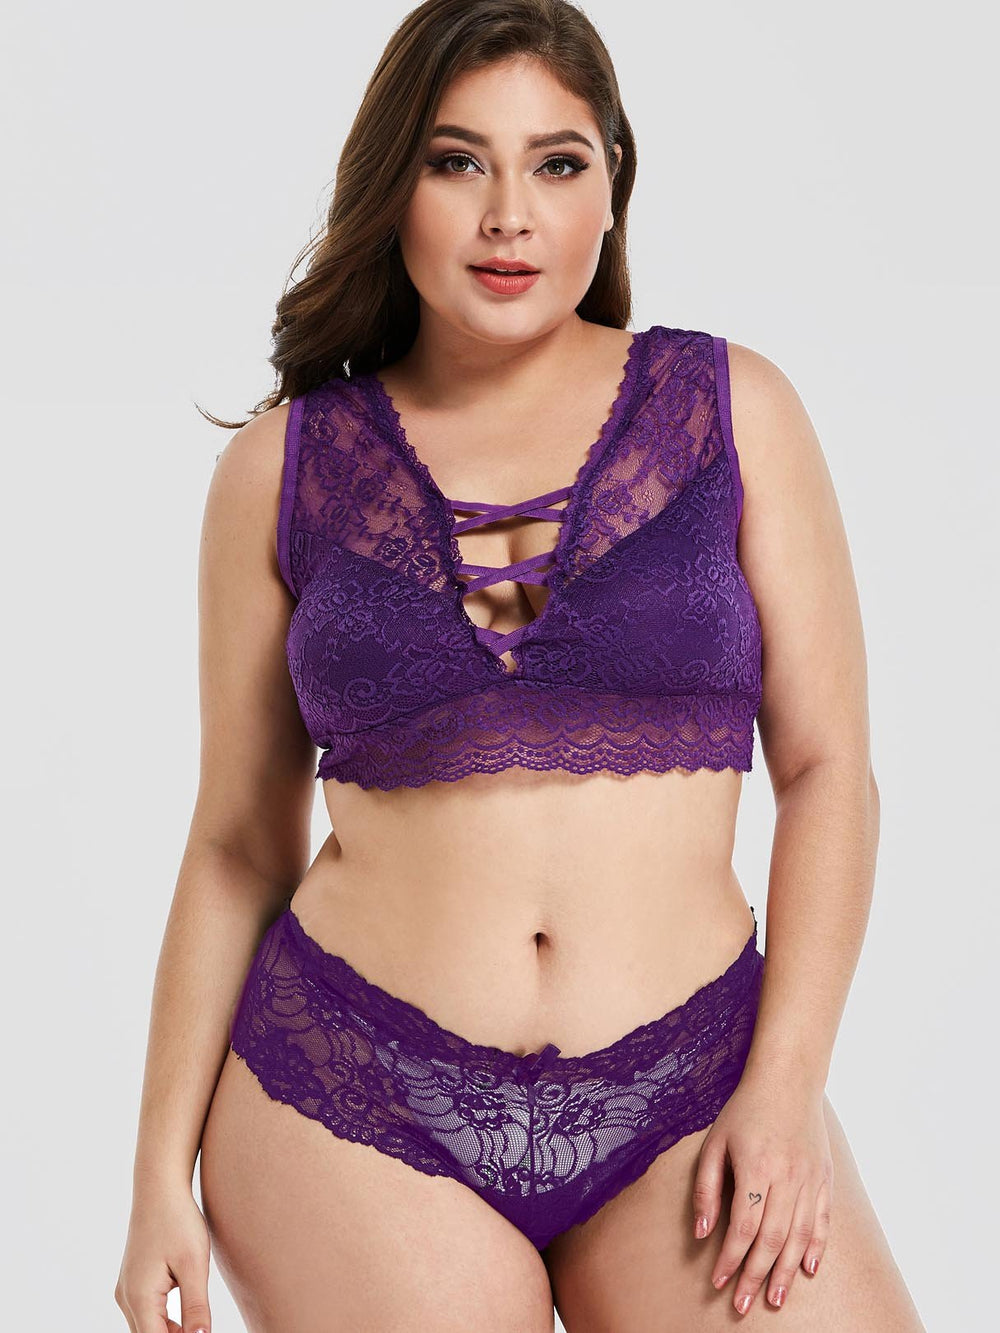 Lace Criss-Cross Purple Plus Size Intimates